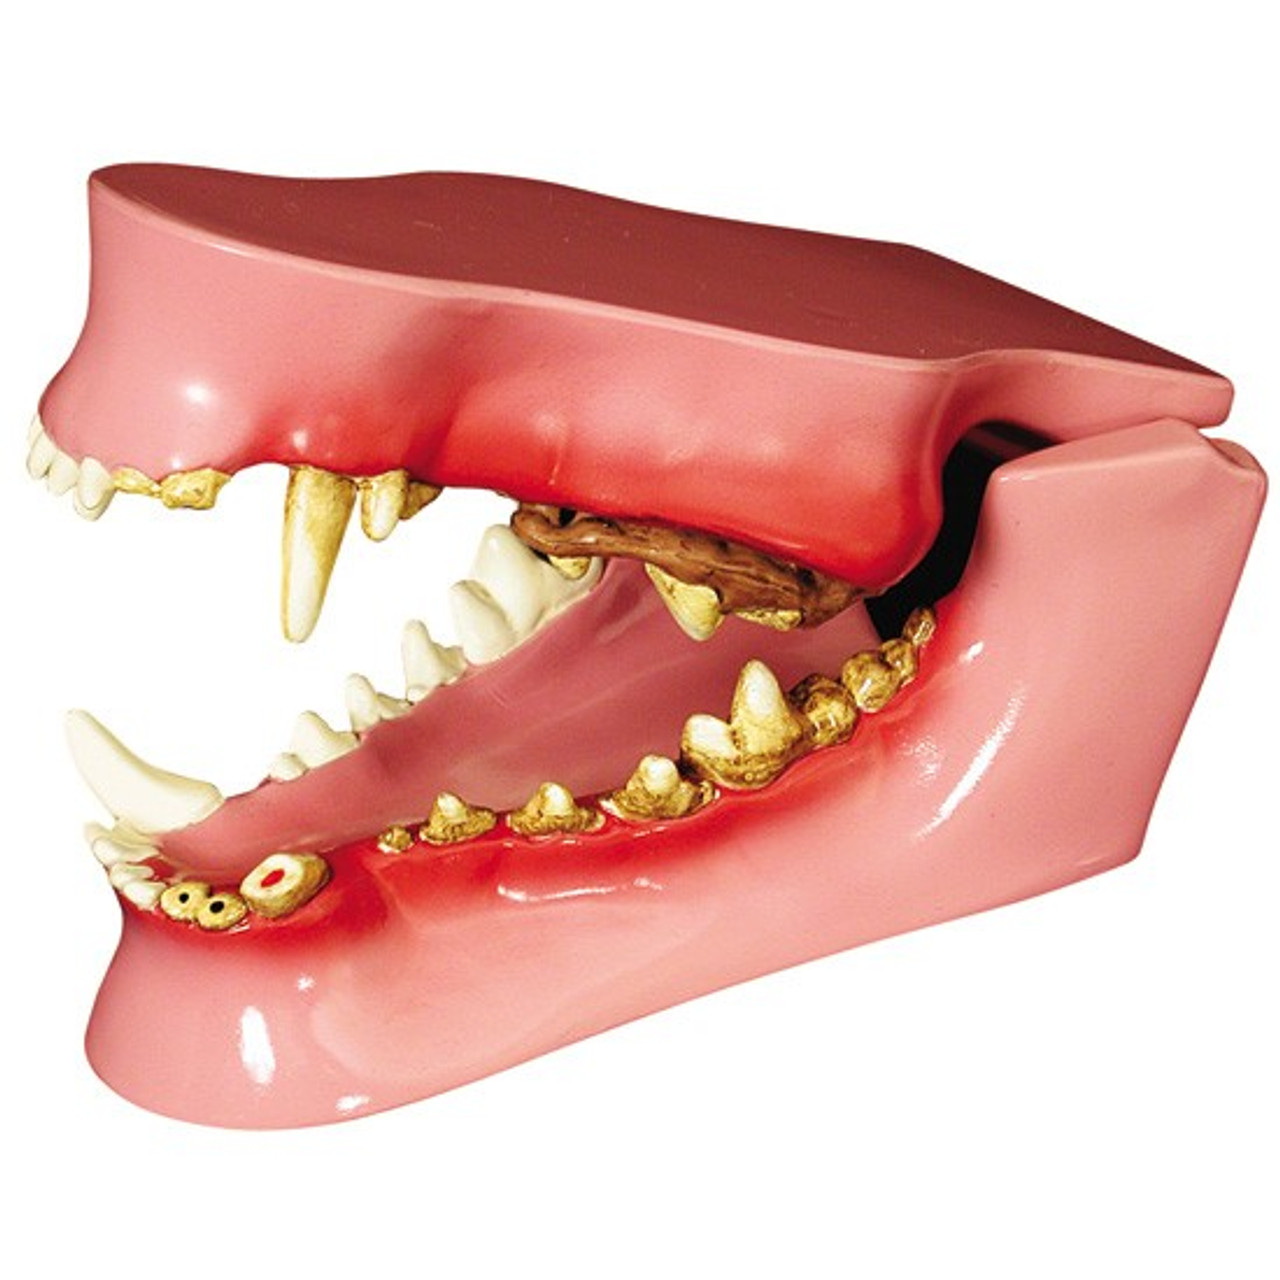 Canine Jaw Model